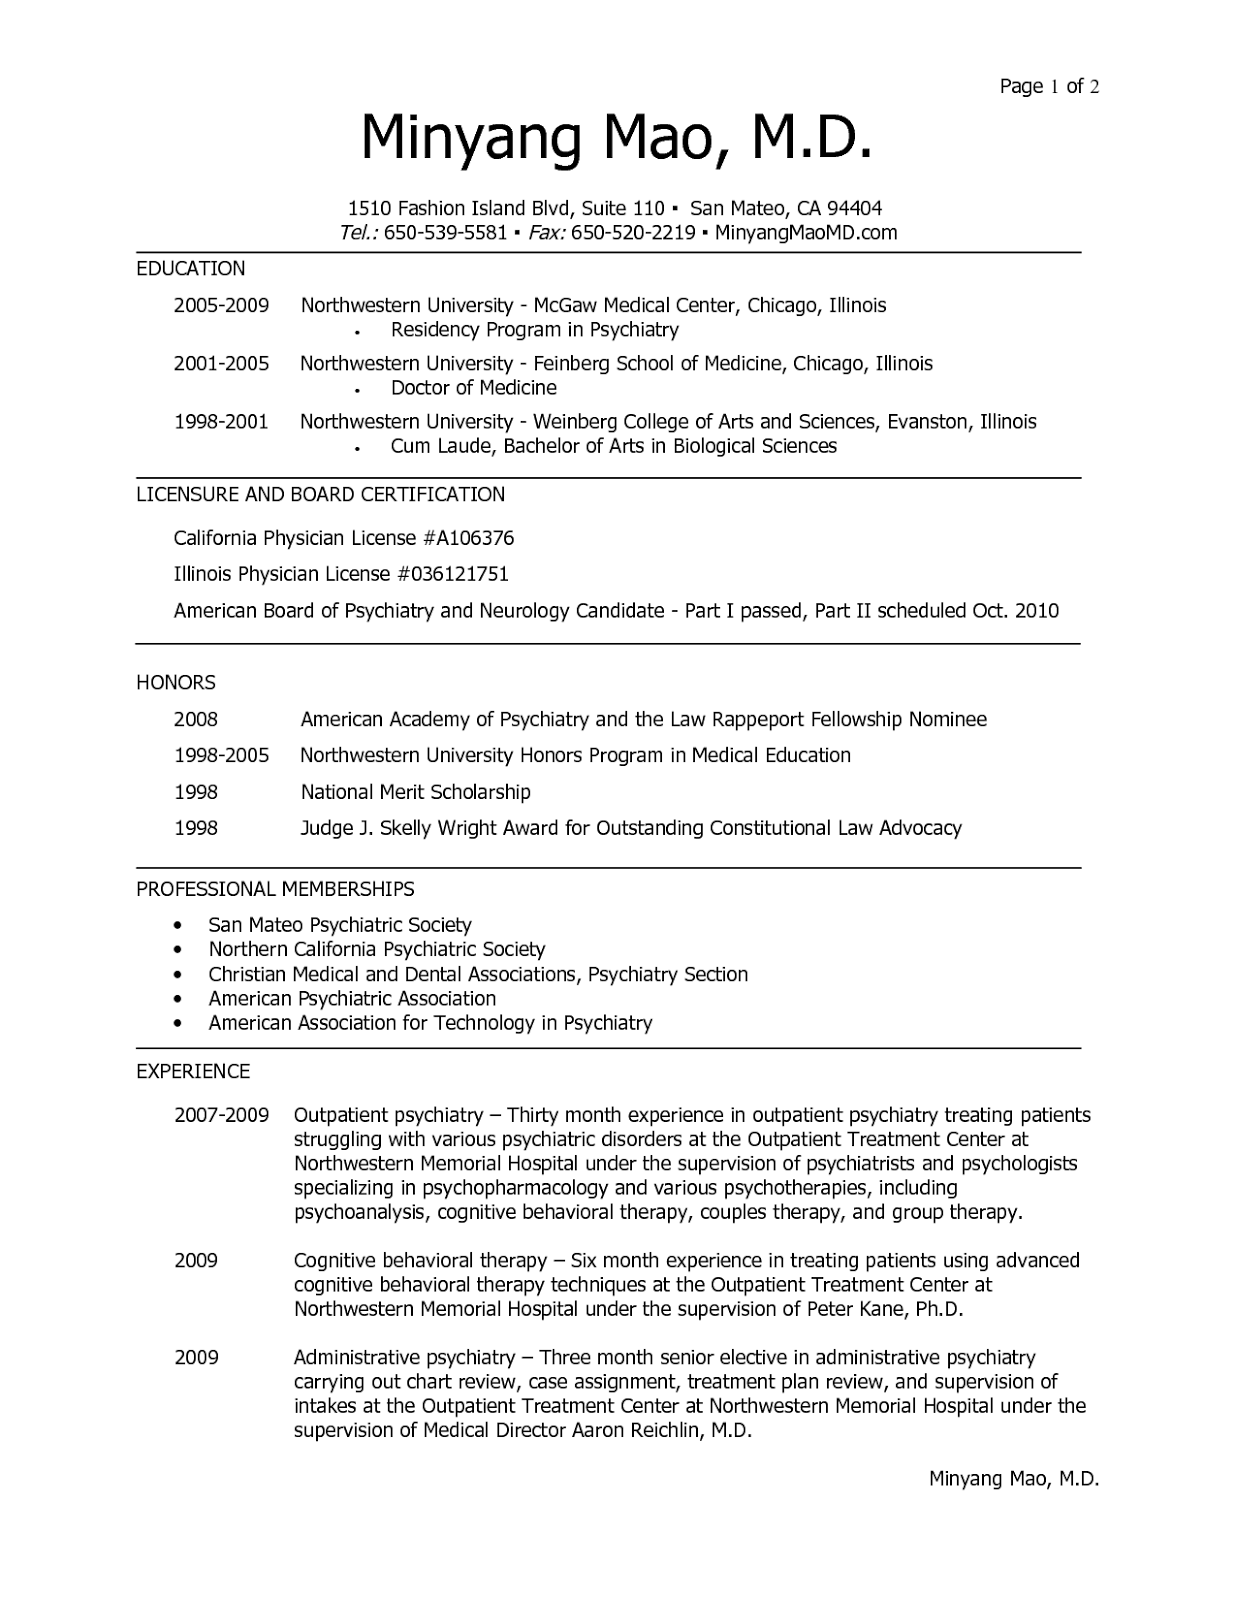 nyu law resume format word resumes 13 best free resume templates word resume. Resume Example. Resume CV Cover Letter